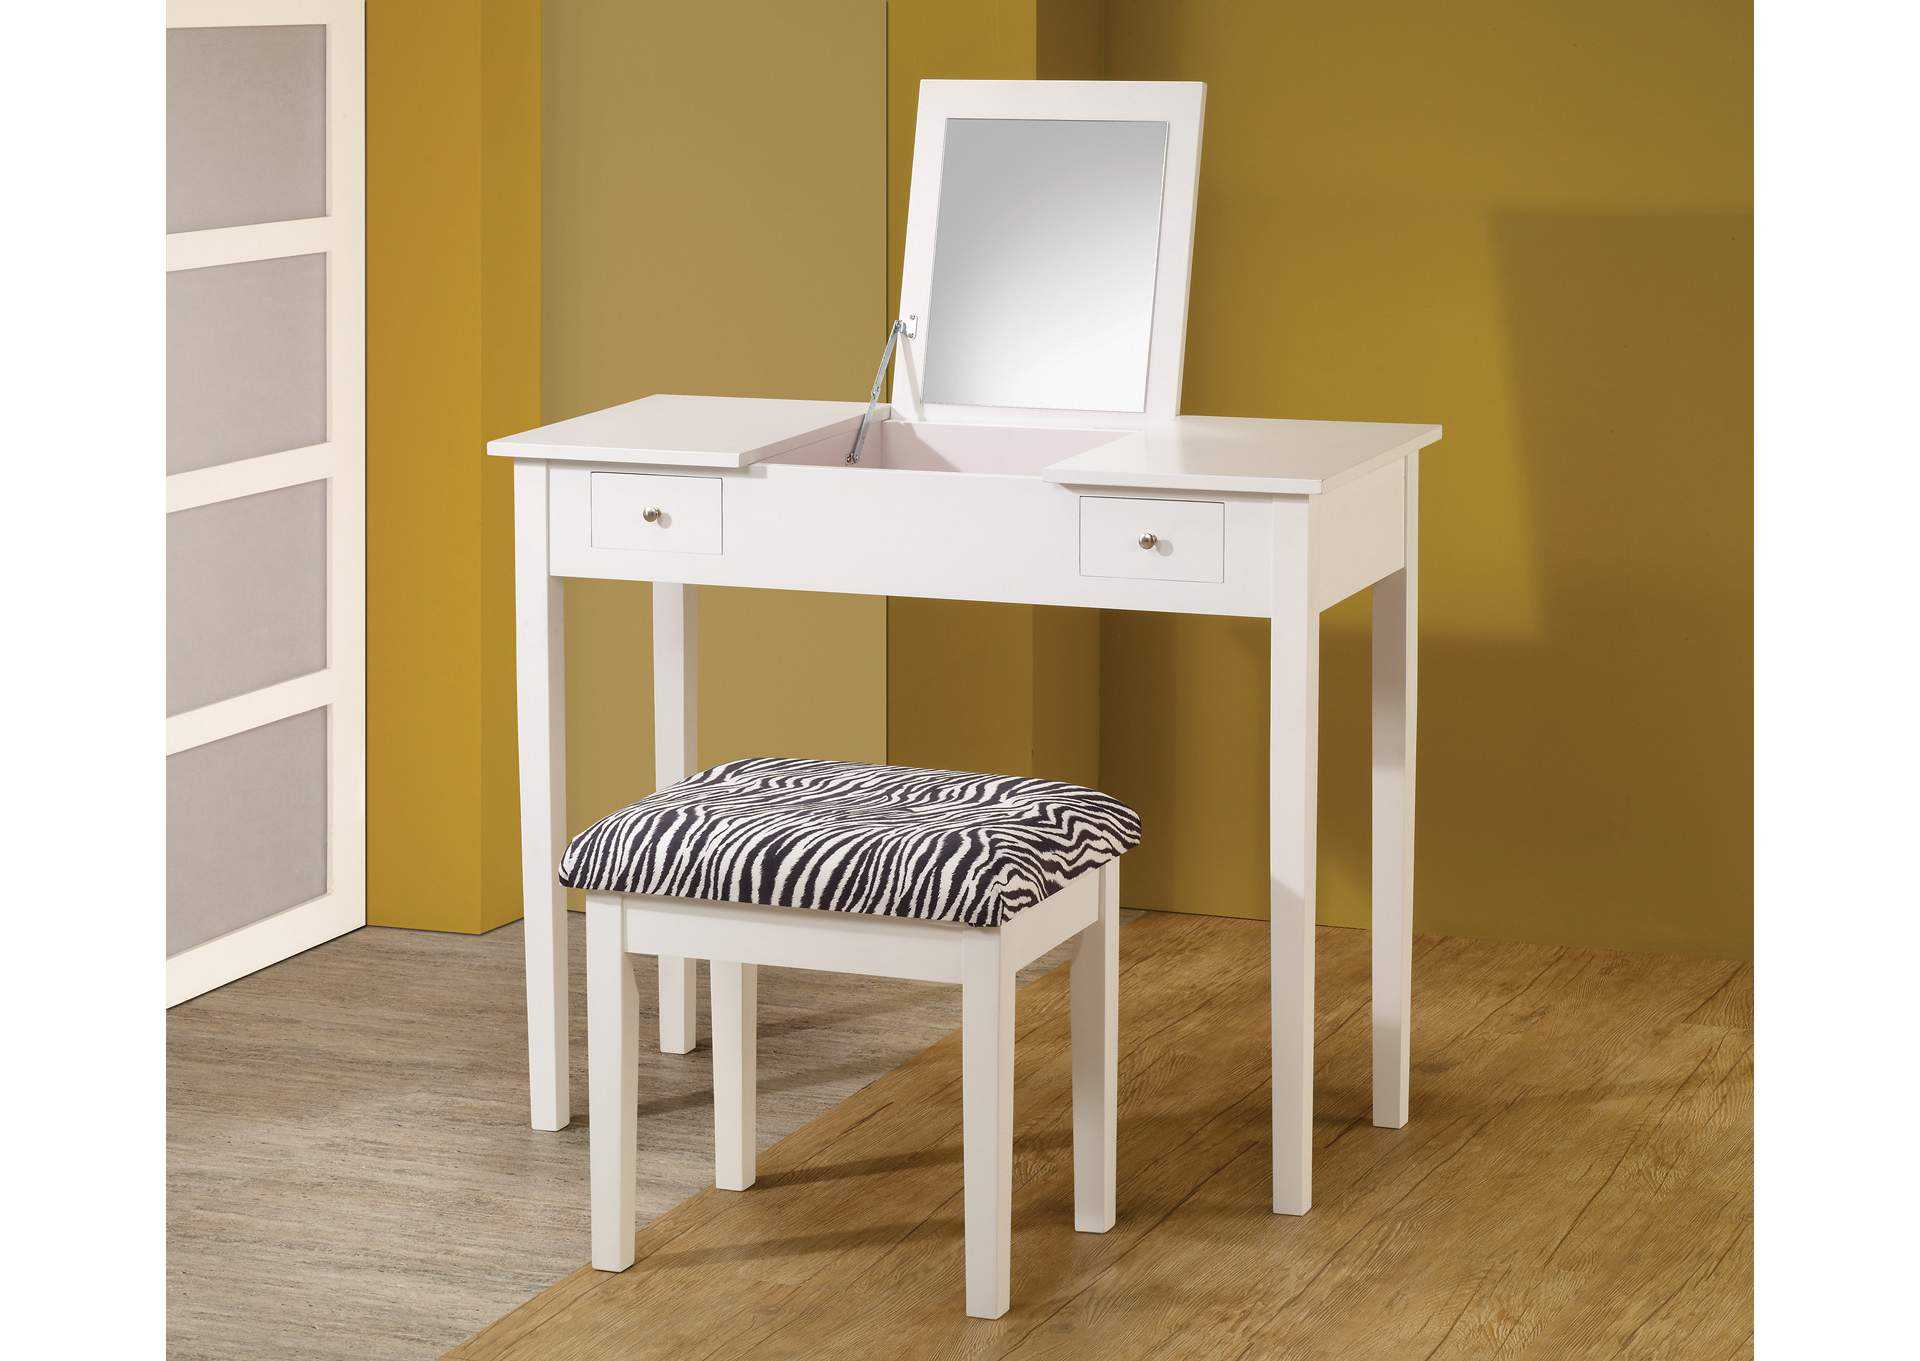 2-Piece Vanity Set White And Zebra,Coaster Furniture